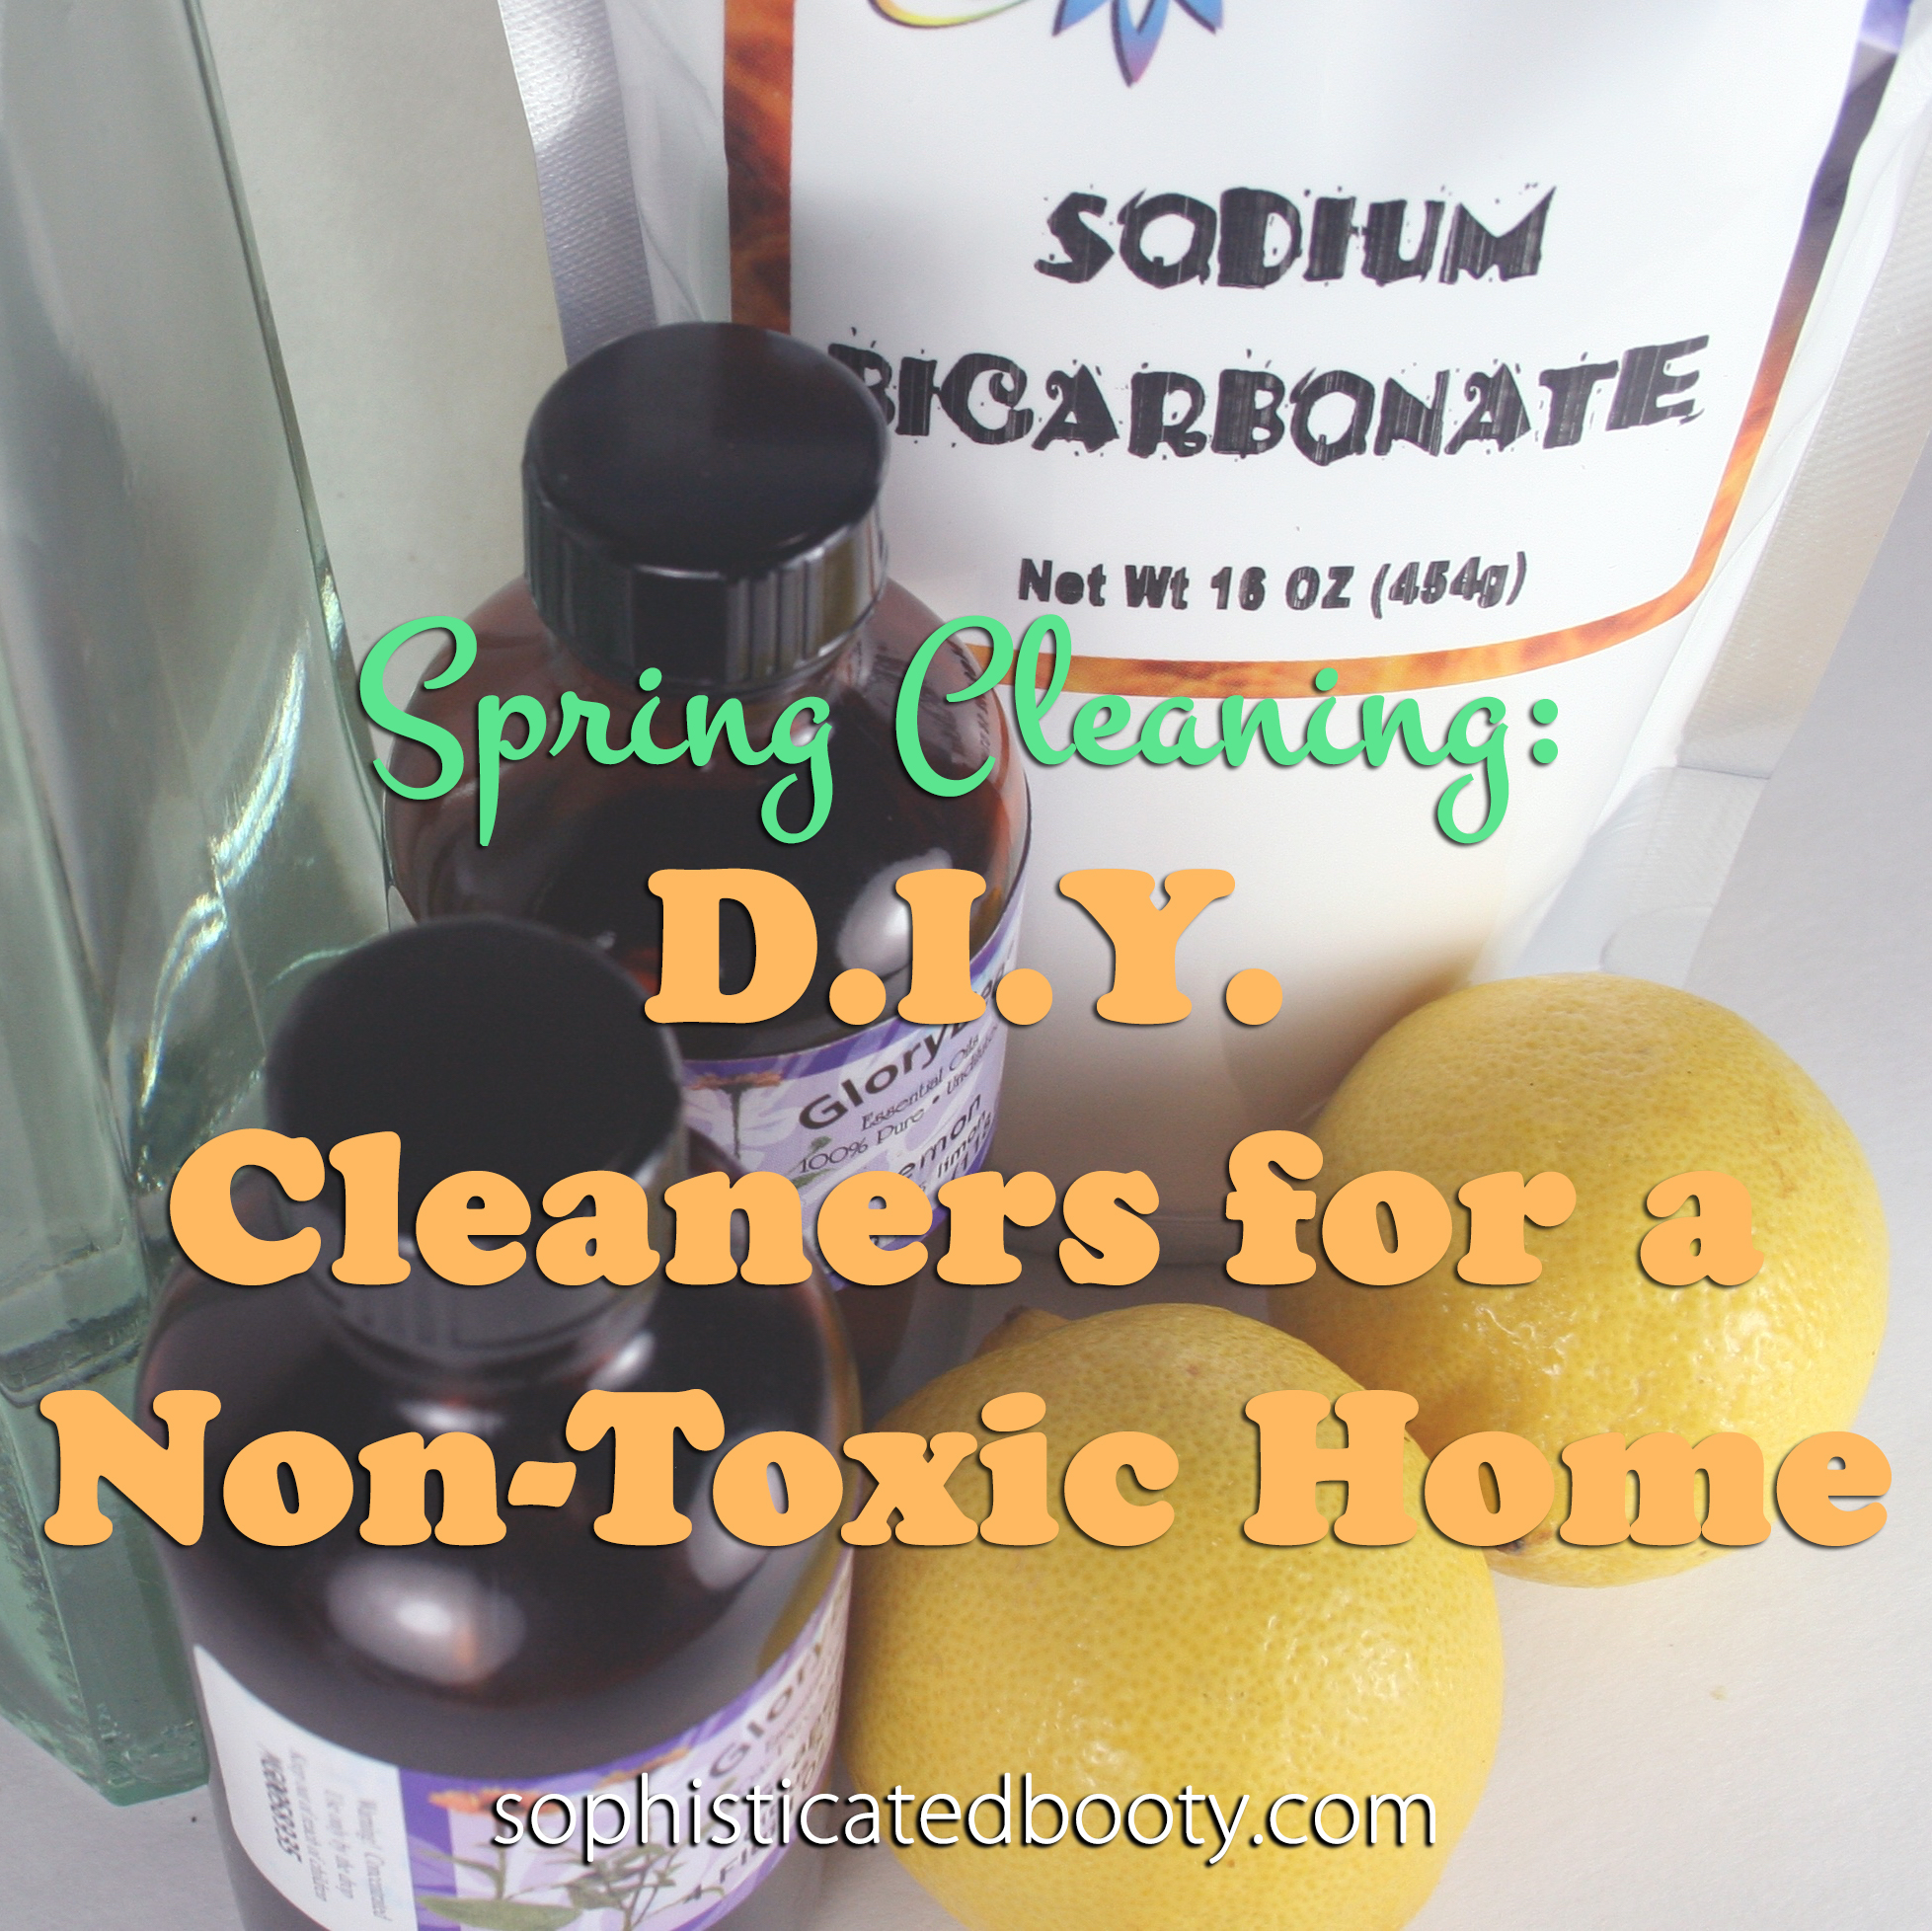 Spring Cleaning D.I.Y. Cleaners for a Non Toxic-Home - Sophisticated Booty